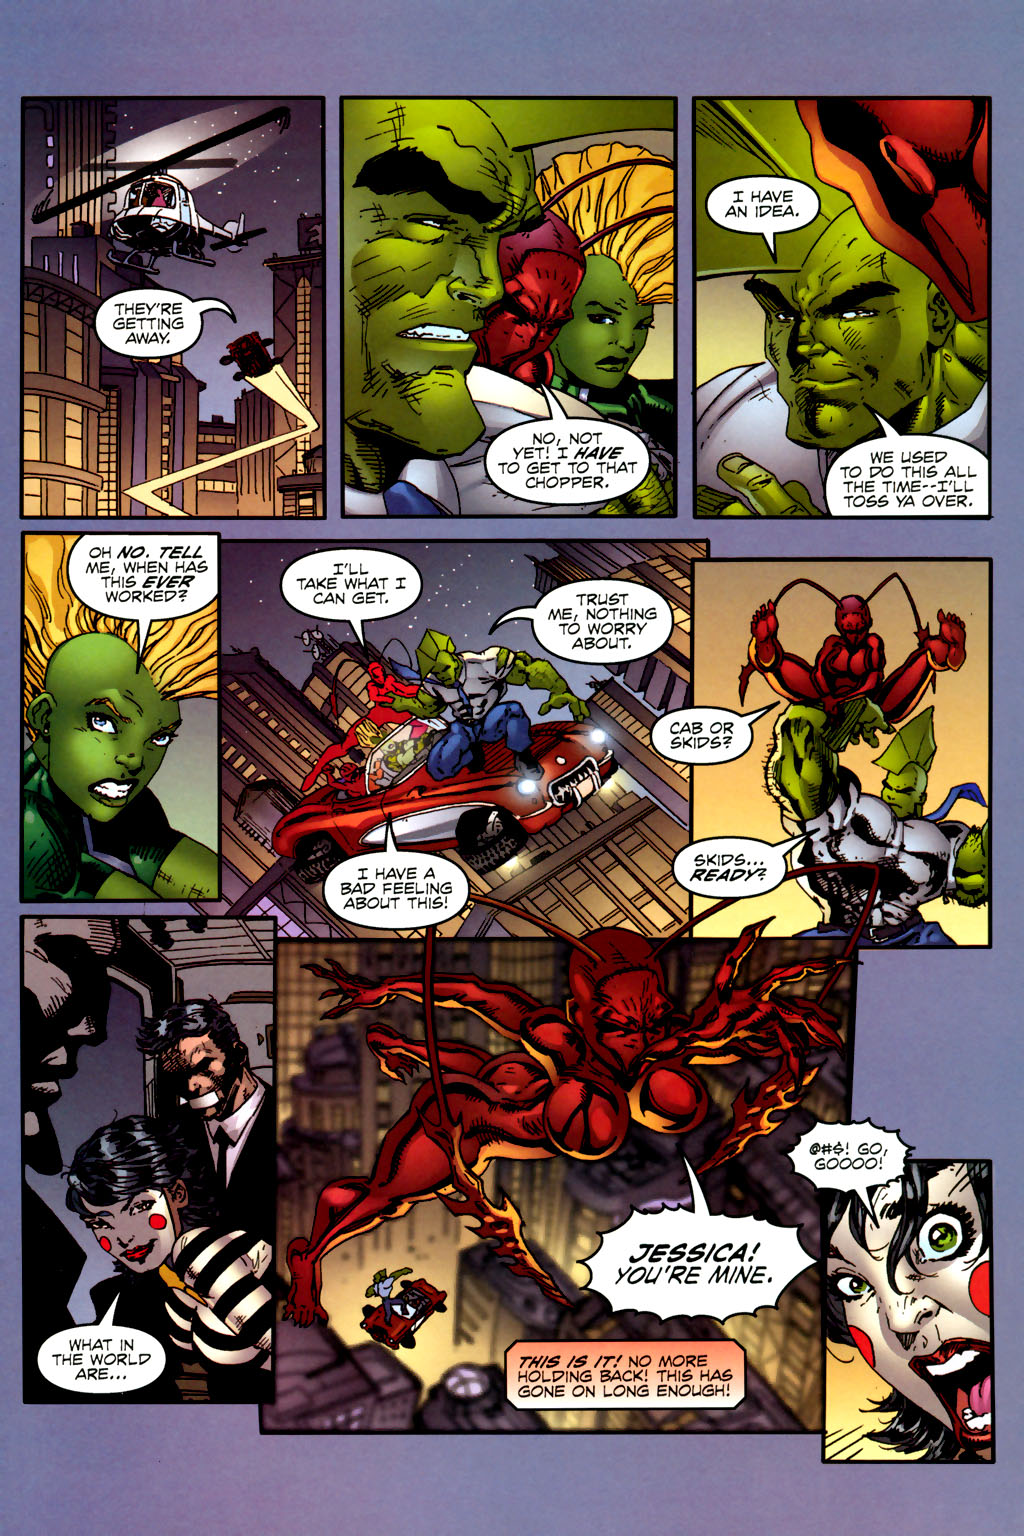 Read online Ant comic -  Issue #2 - 21